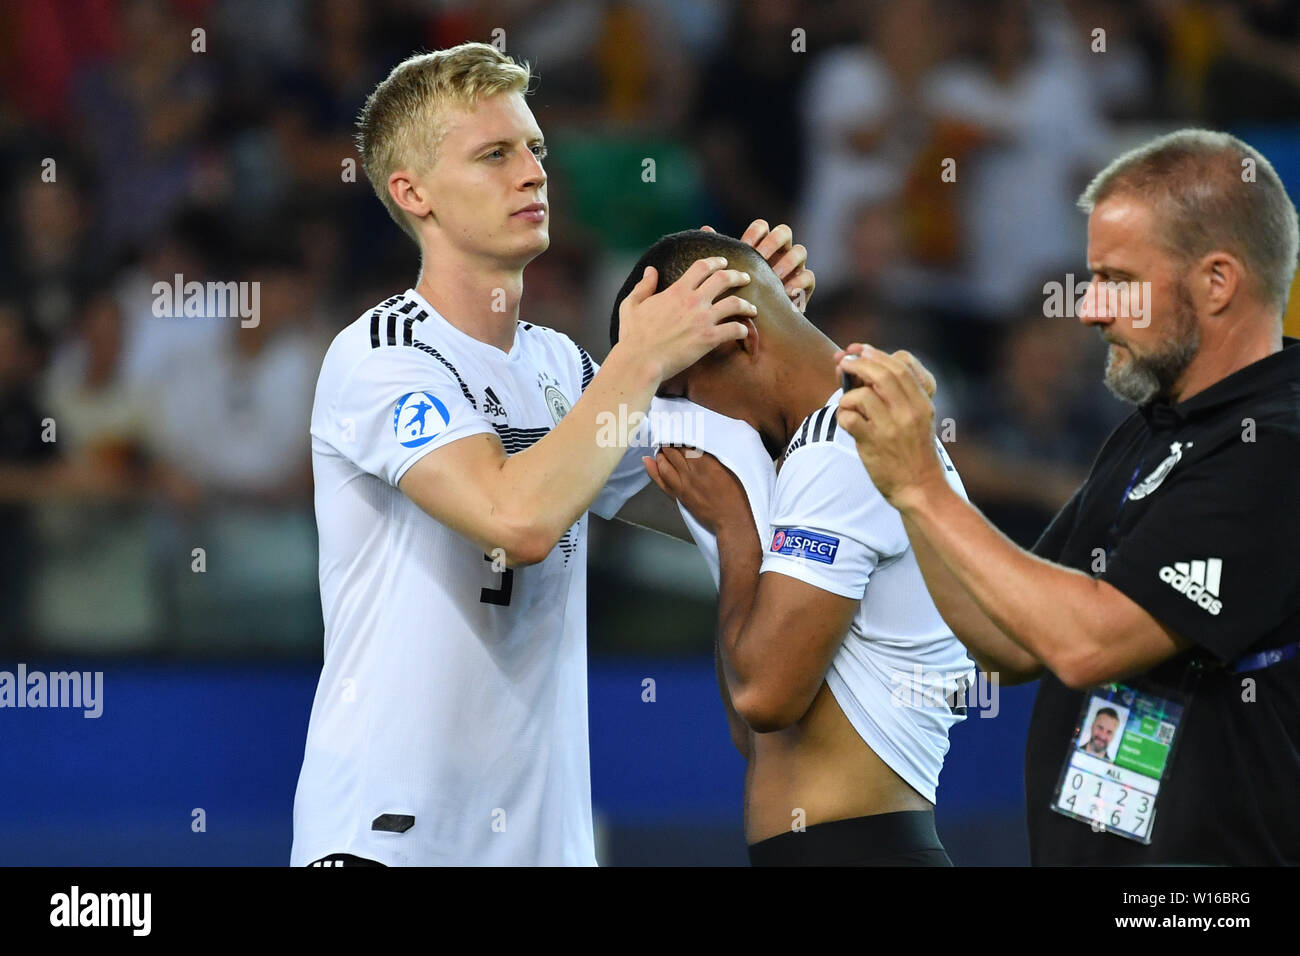 Udine, Italien. 30th June, 2019. Timo BAUMGARTL (GER) troubles Benjamin HENRICHS (GER) after End of the Game, disappointment, frustrated, disappointed, frustratedriert, dejected, Spain (ESP) - Germany (GER) 2-1, at 30.06.2019 Stadio Friuli Udine. Football U-21, FINALE UEFA Under21 European Championship in Italy/SanMarino from 16.-30.06.2019. | Usage worldwide Credit: dpa/Alamy Live News - Stock Image